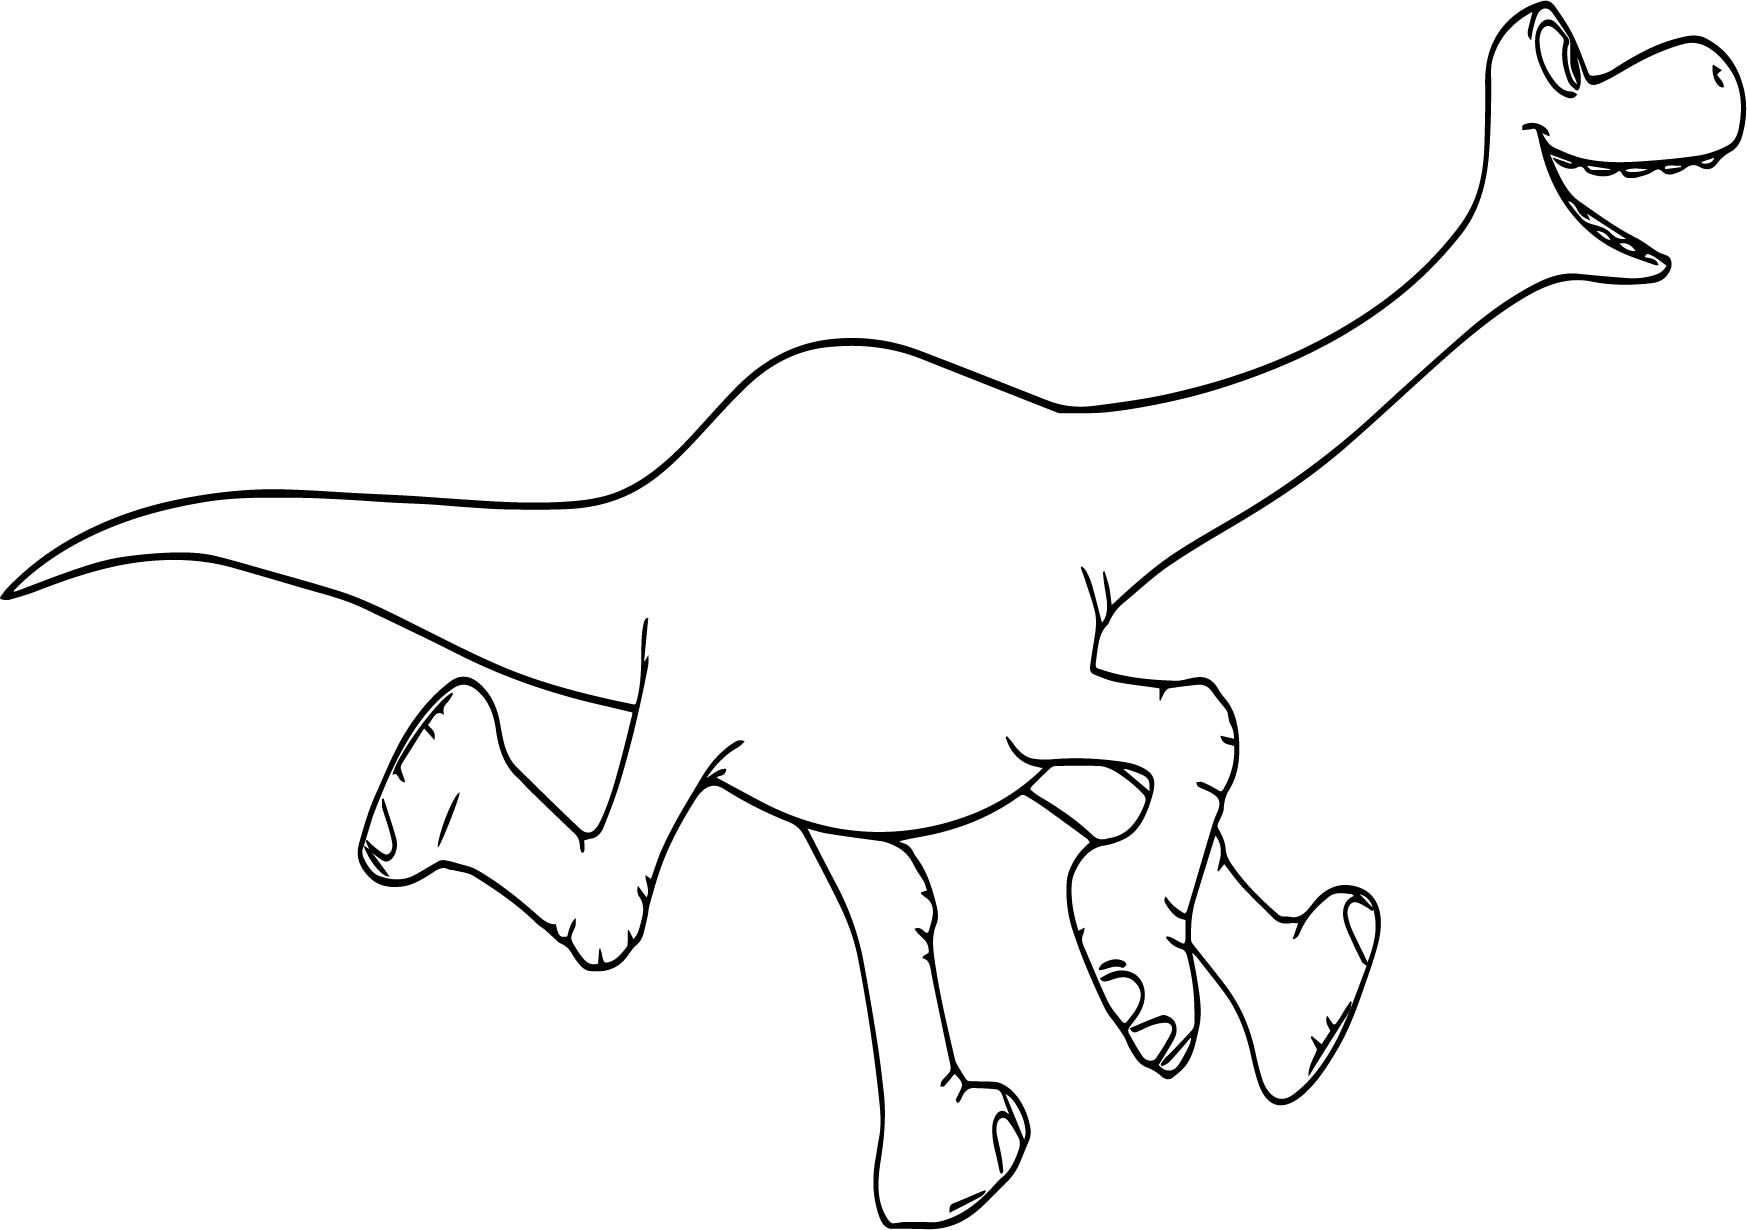 Awesome The Good Dinosaur Disney Arlo Run Cartoon Coloring Pages